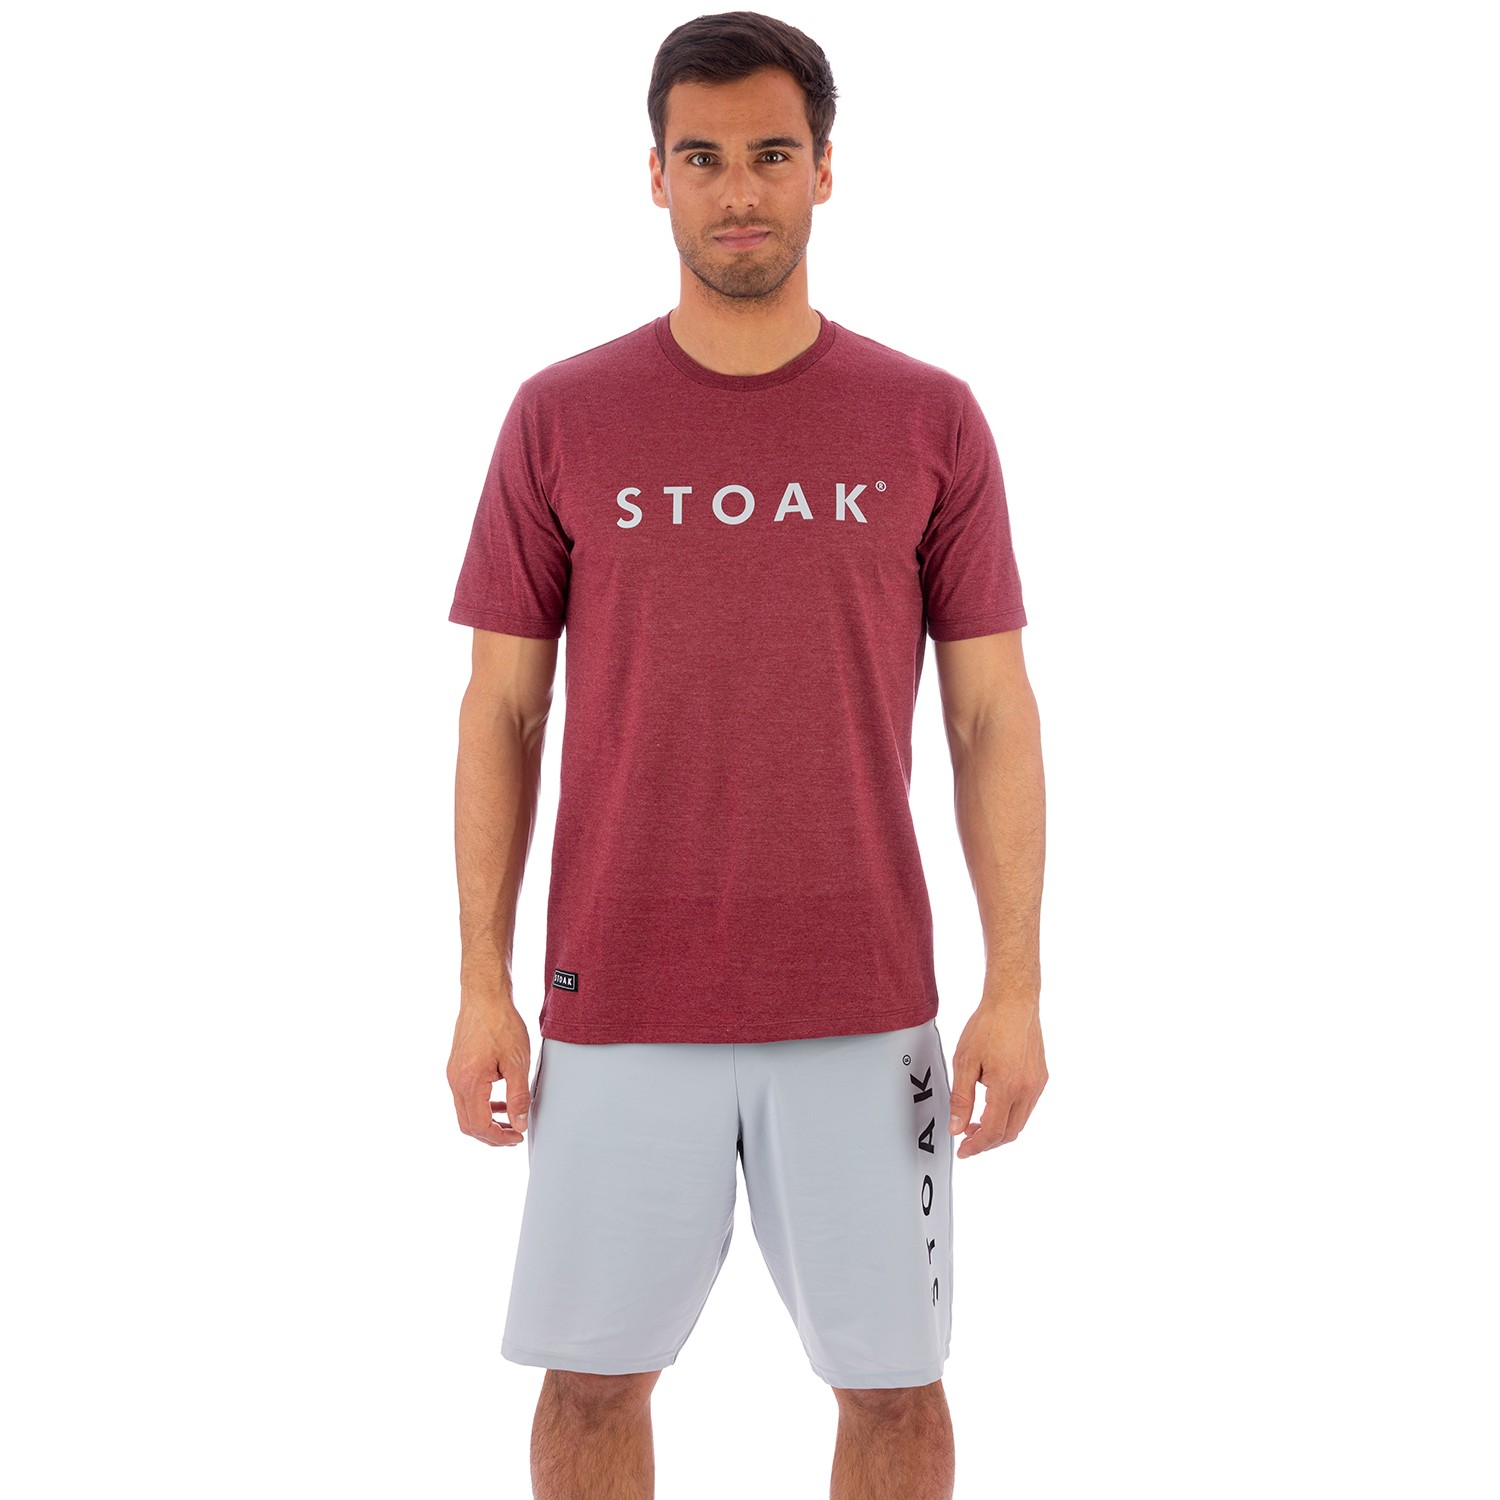 STOAK RUSH - ROCK Package T-shirt + Athletic Shorts